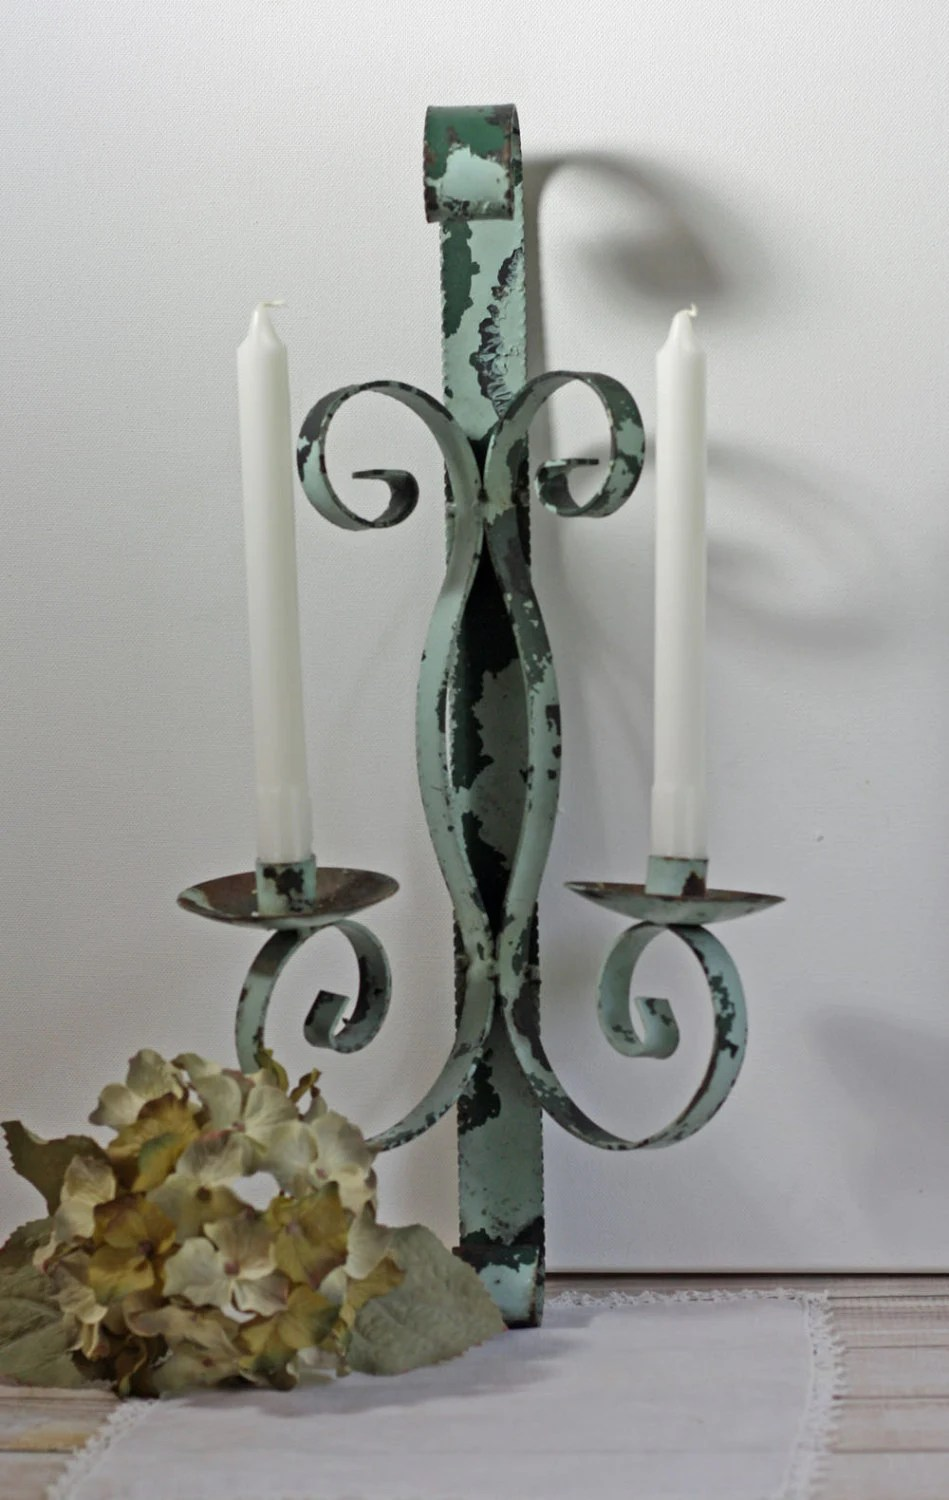 Vintage Wrought Iron Candle Holder Wall by Cottonridgevintage on Antique Wrought Iron Wall Candle Holders id=23700